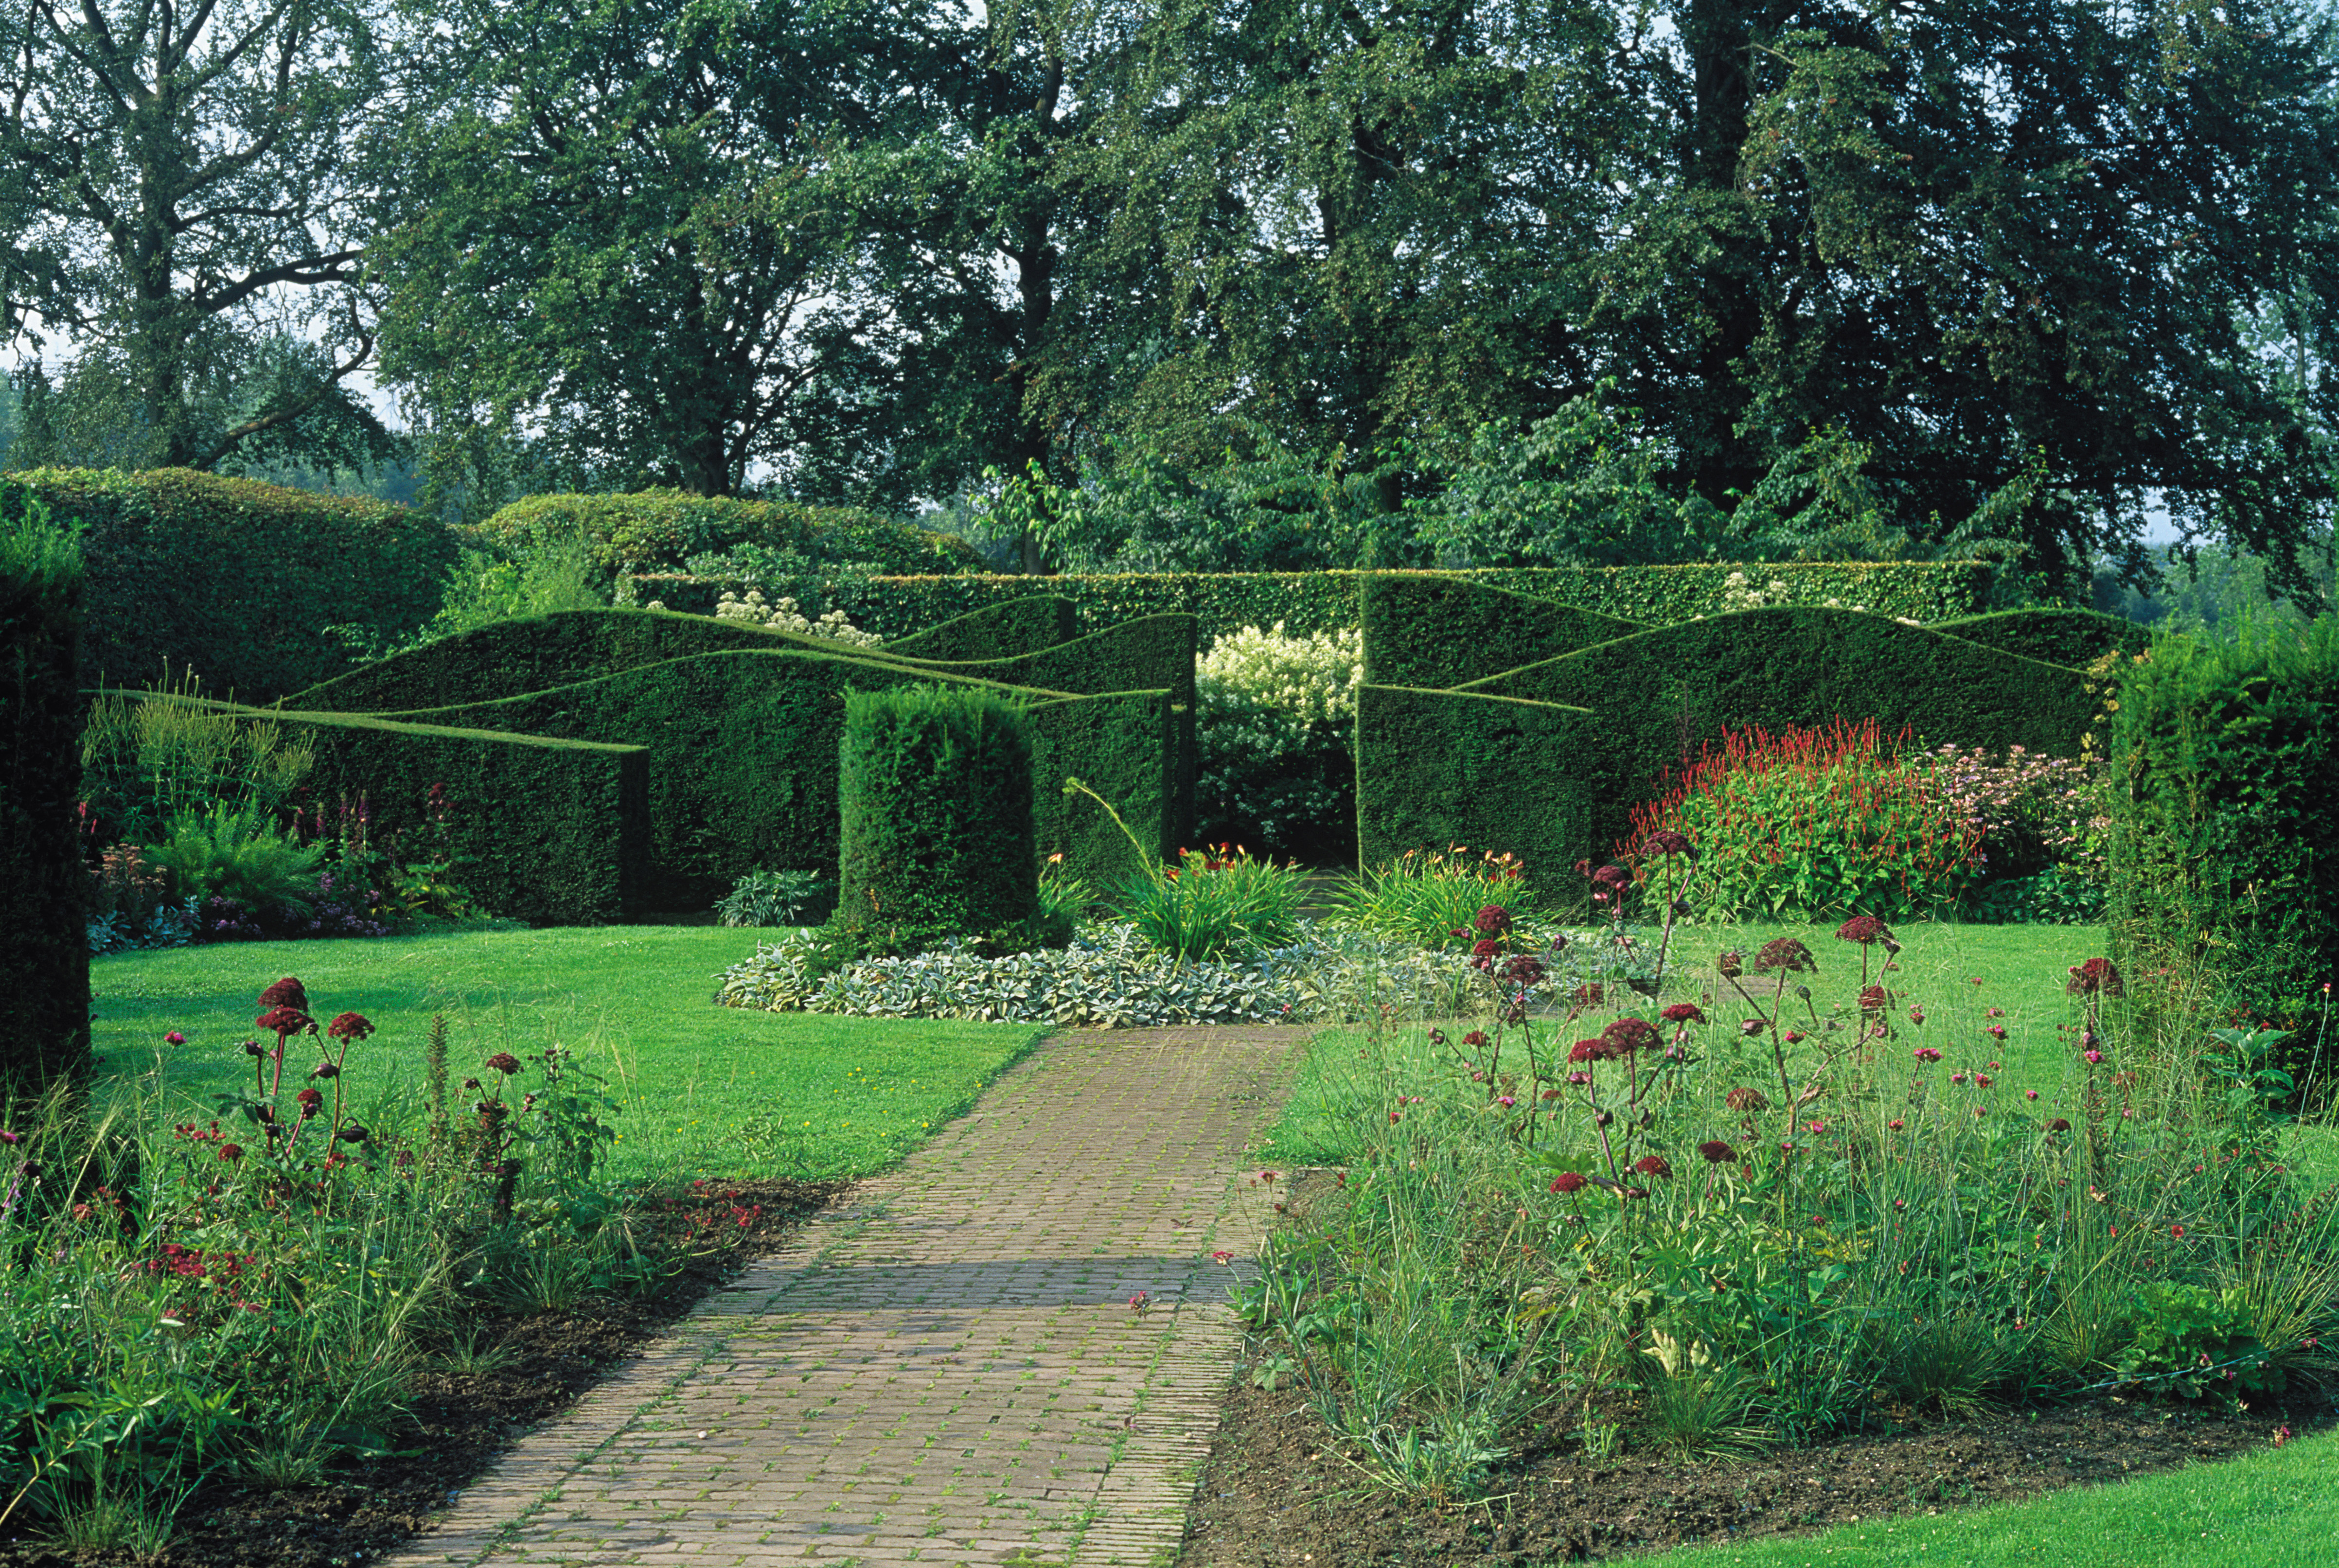 Serpentine hedges at Hummelo